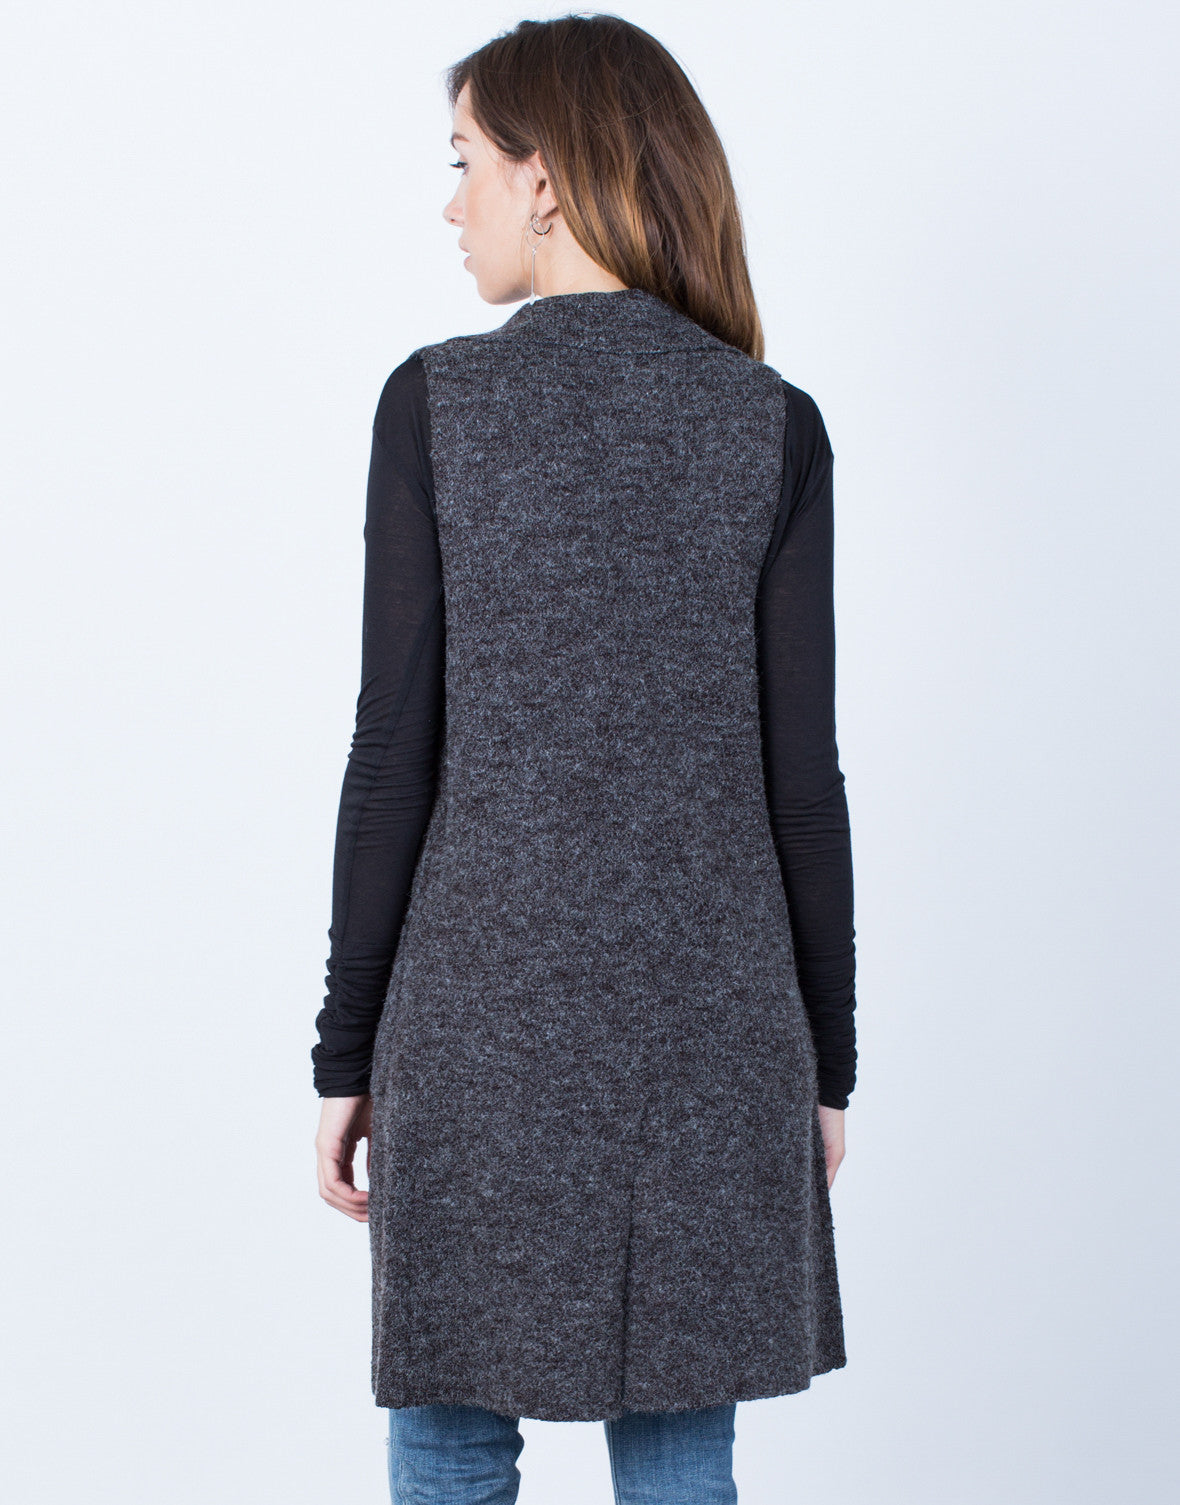 Back View of Brushed Knit Button Vest